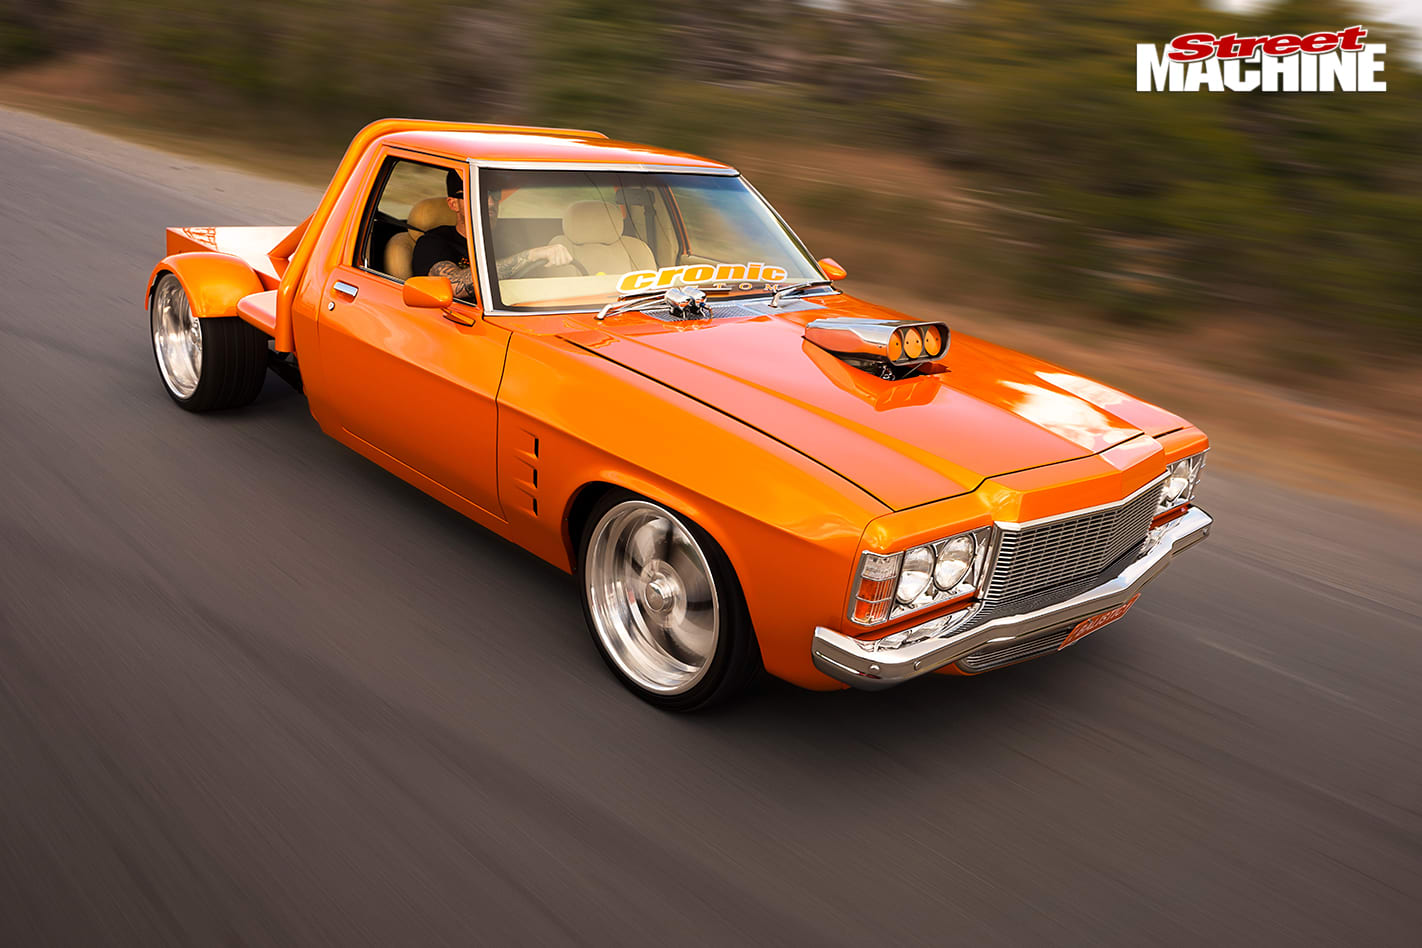 400-Cube -Holden -HQ-One -Tonner -driving